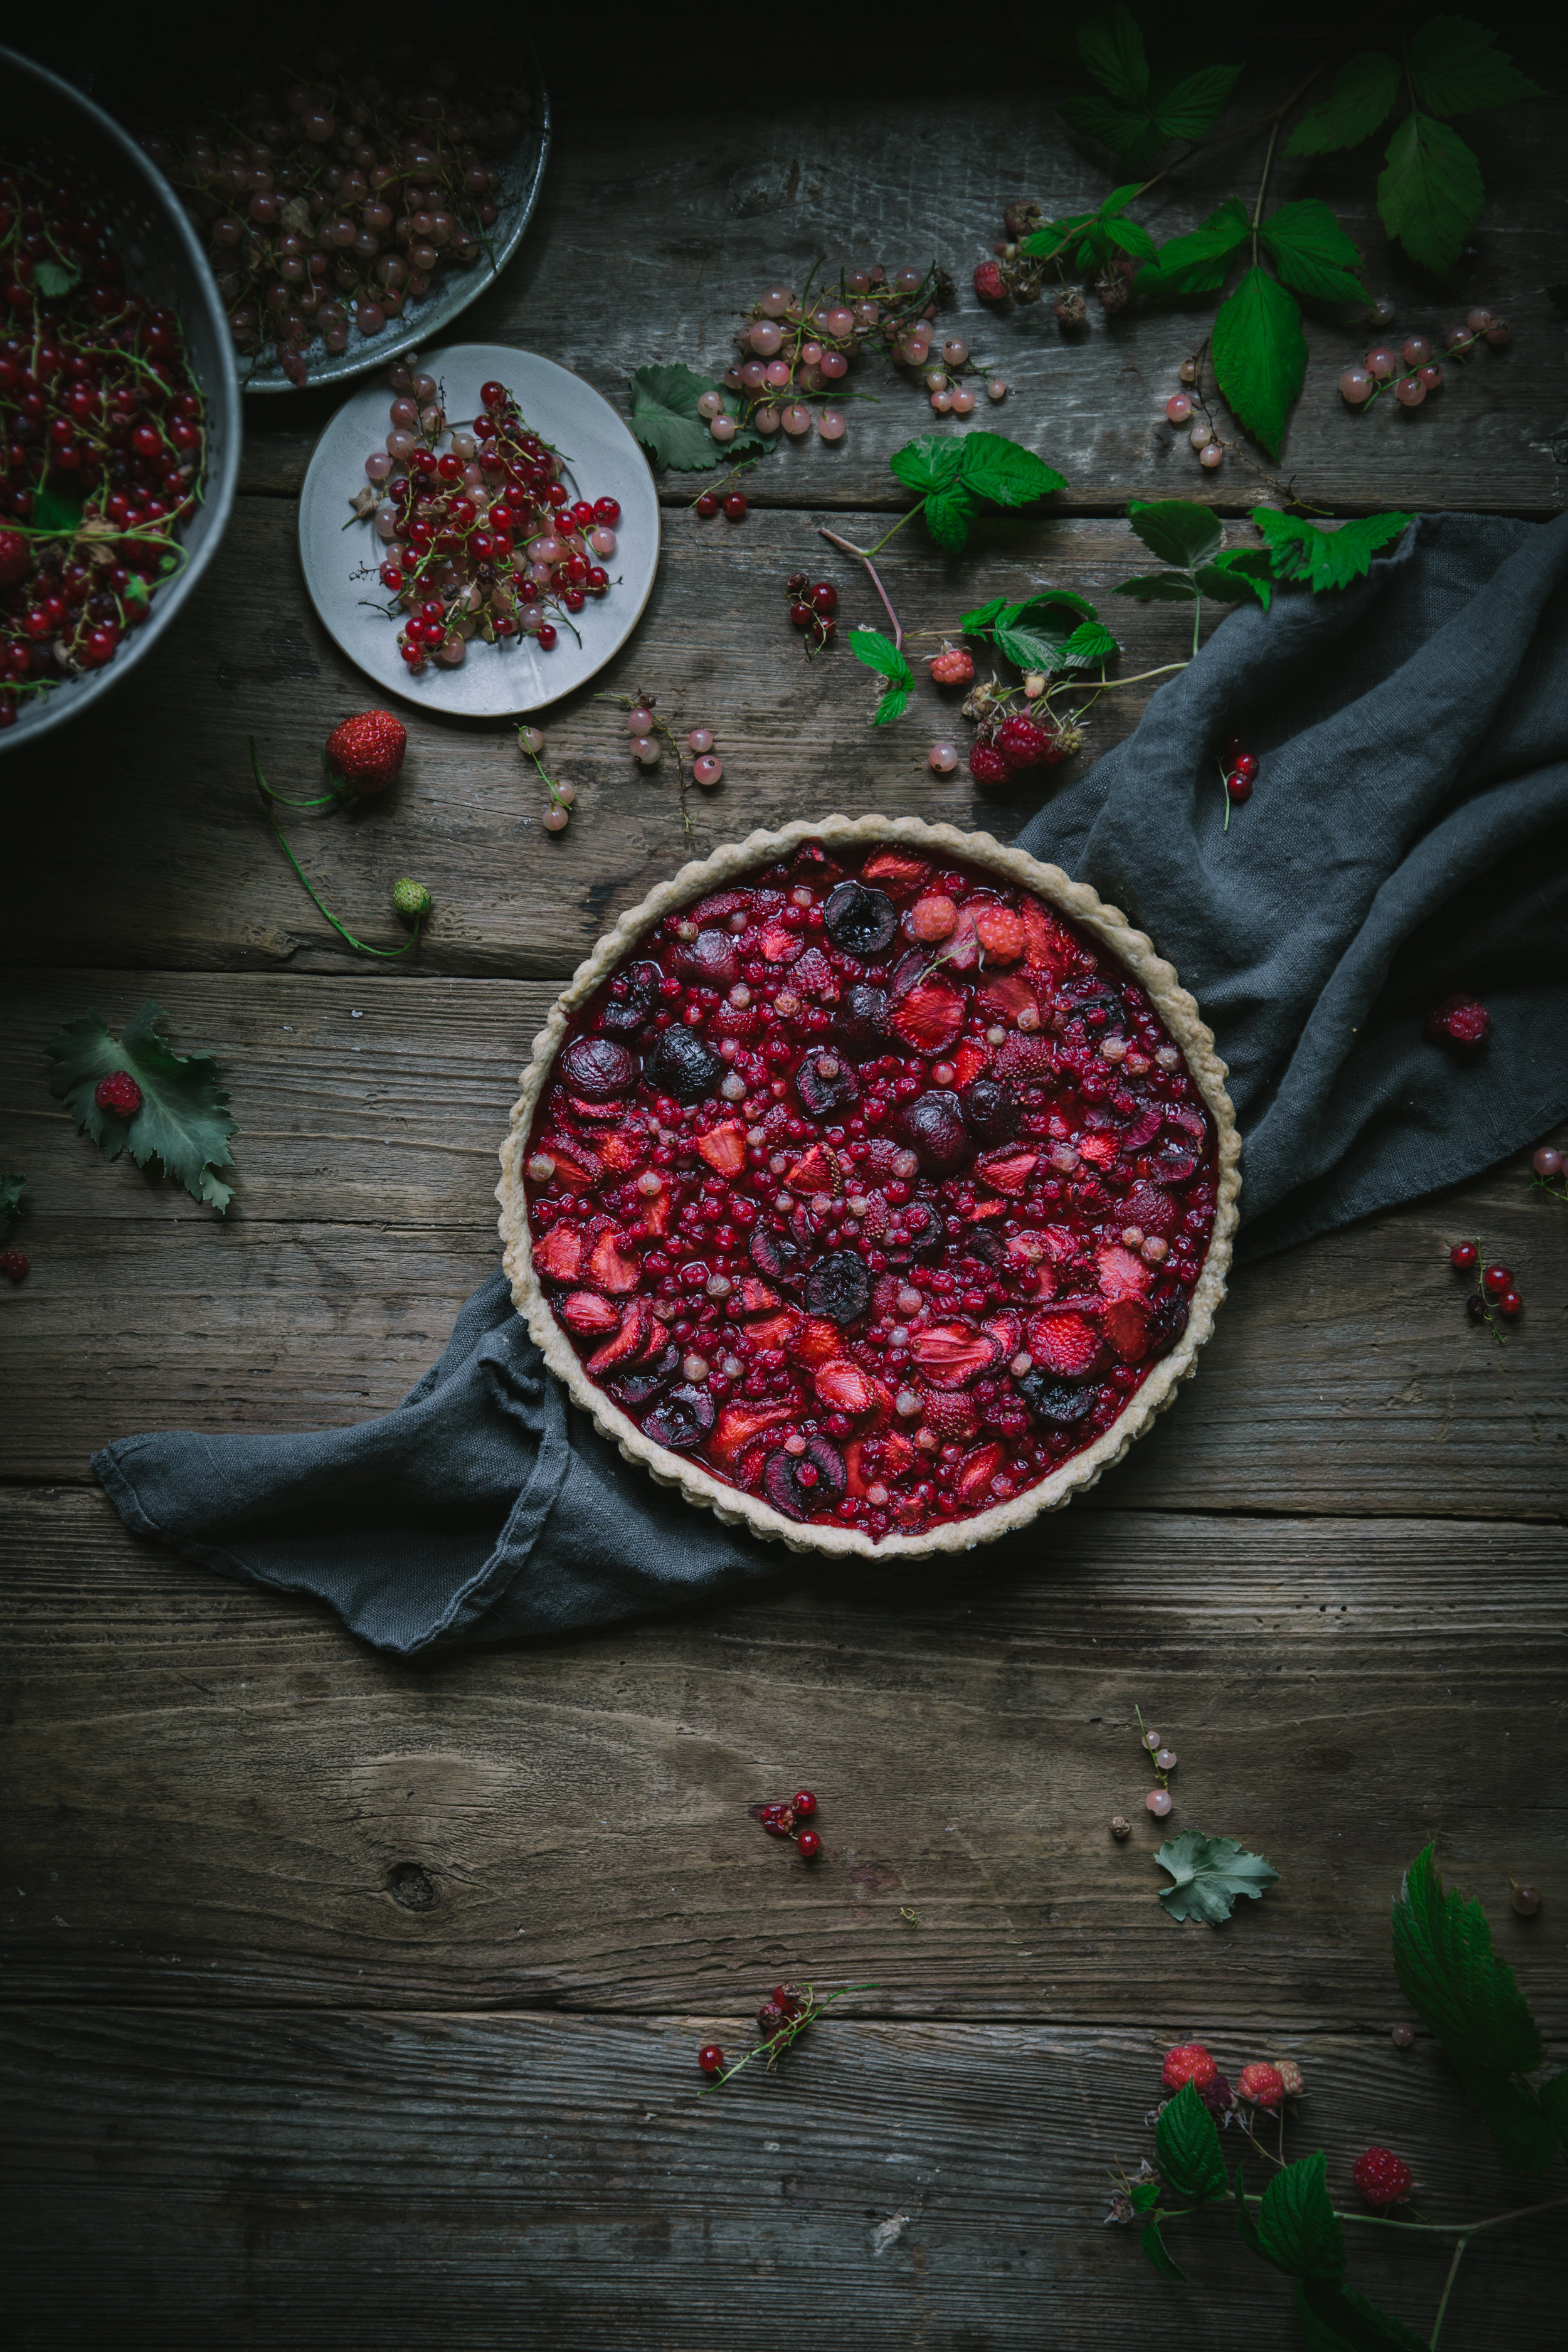 Learn food photography online